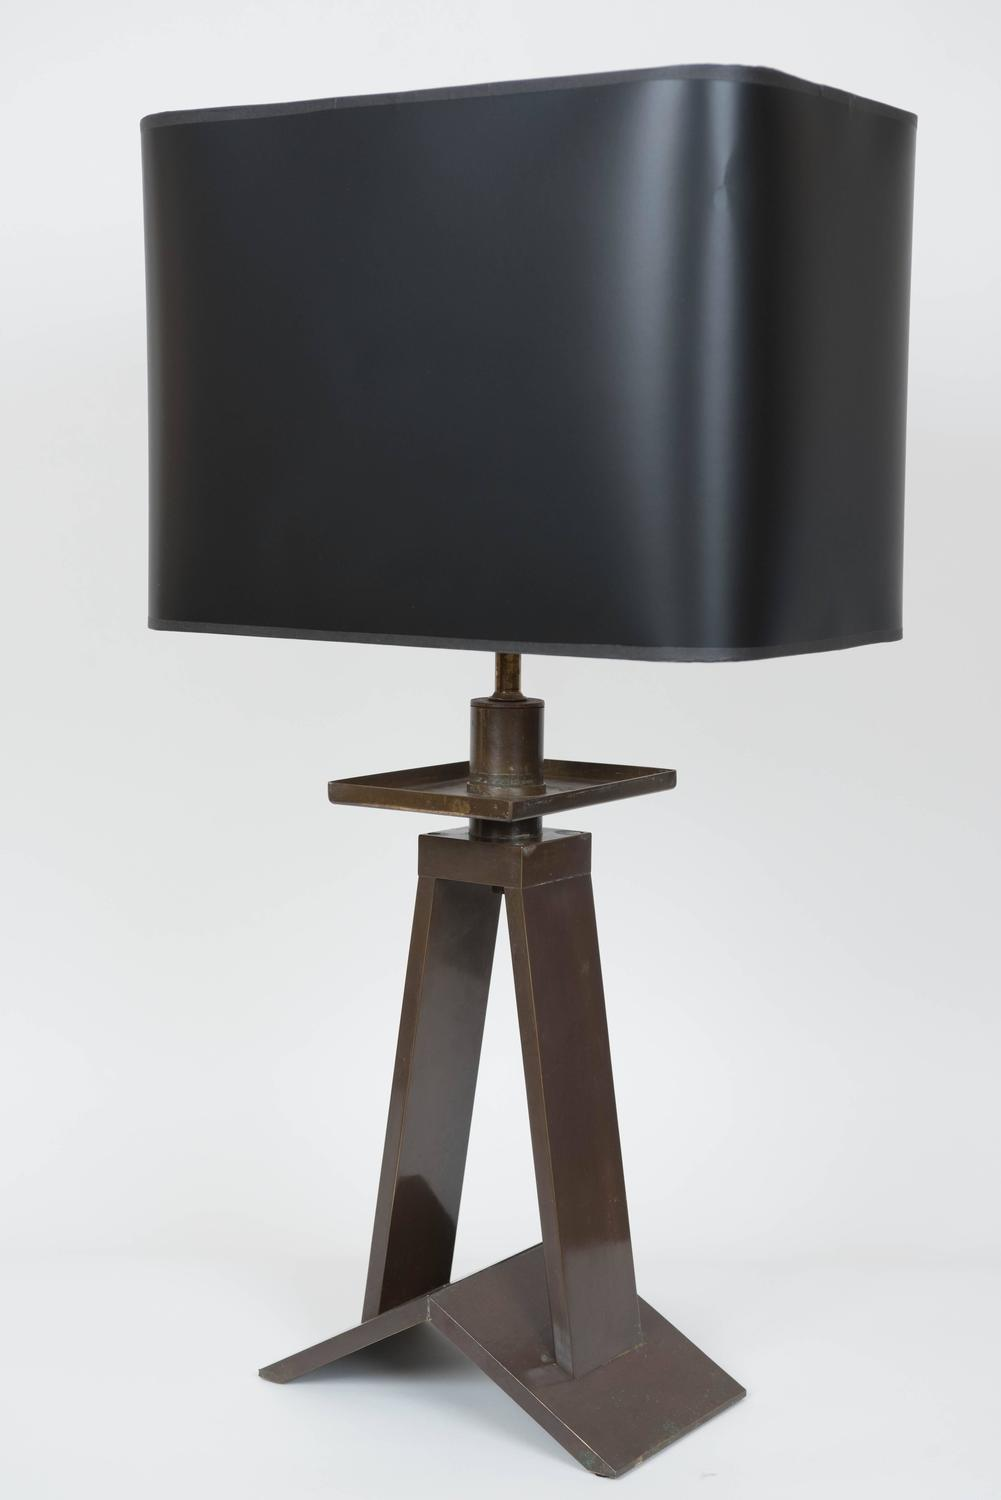 vintage bronze quotindustrialquot lamp usa circa 1940 at 1stdibs With chair table lamp yonge st